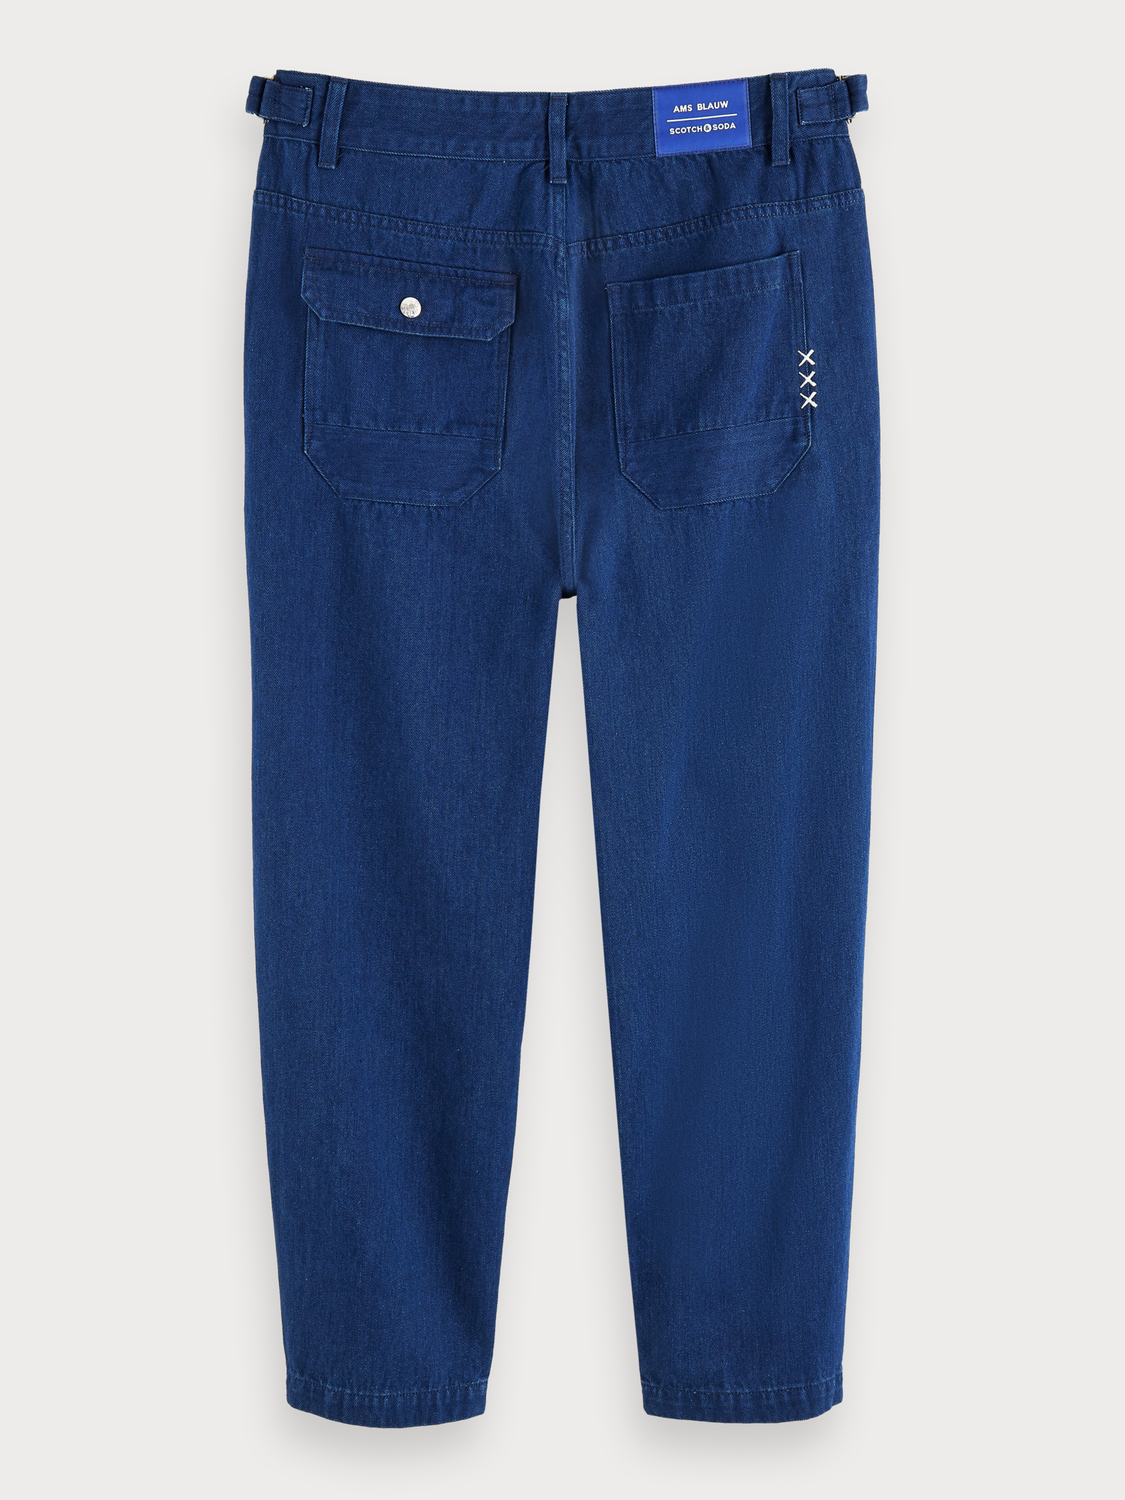 Herrar Chinos i 100% bomullsdenim | Medium-rise